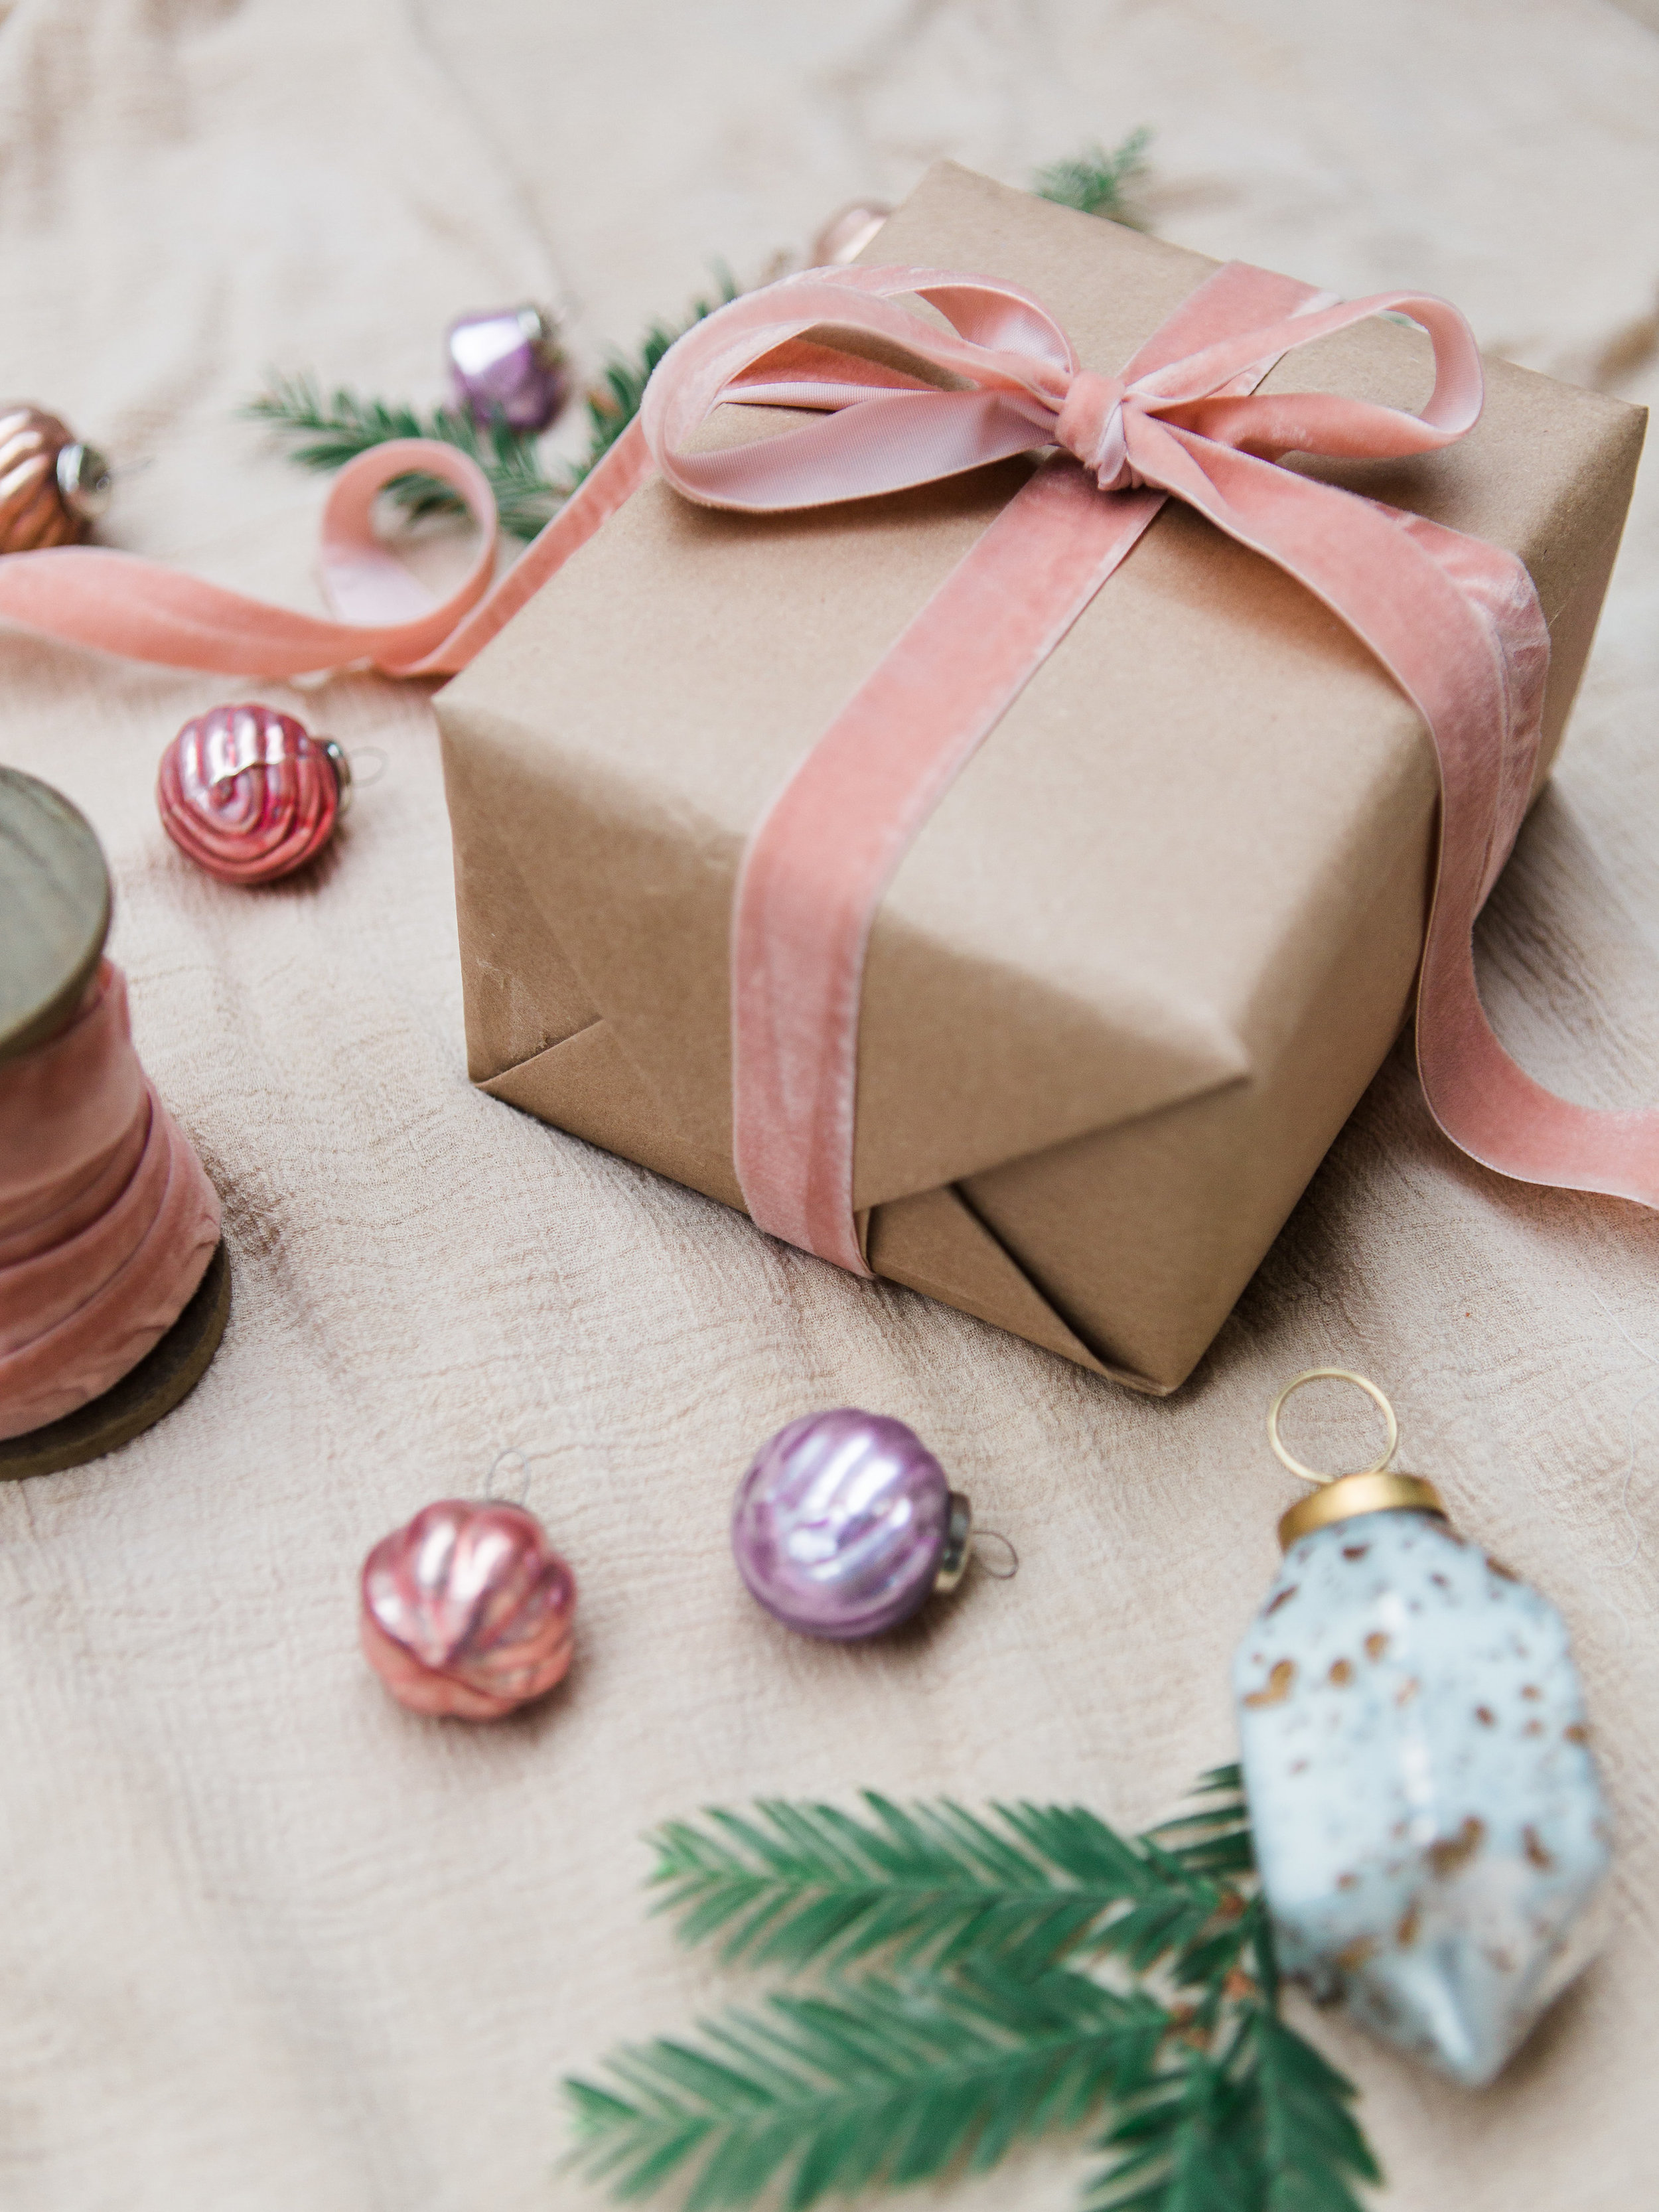 alternative wrapping ideas for christmas gifts not using red and green